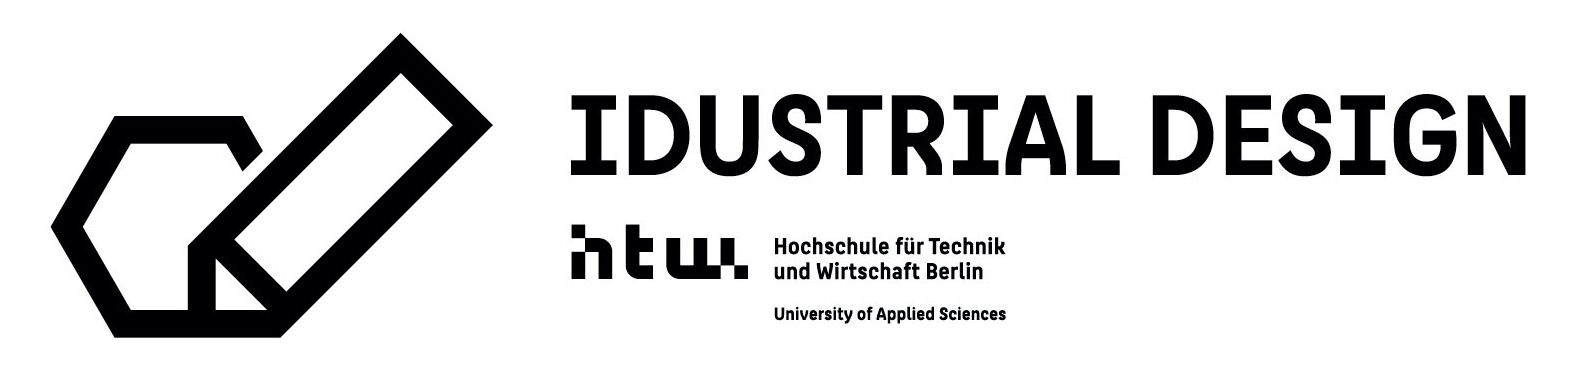 IndustrialDesignBerlin